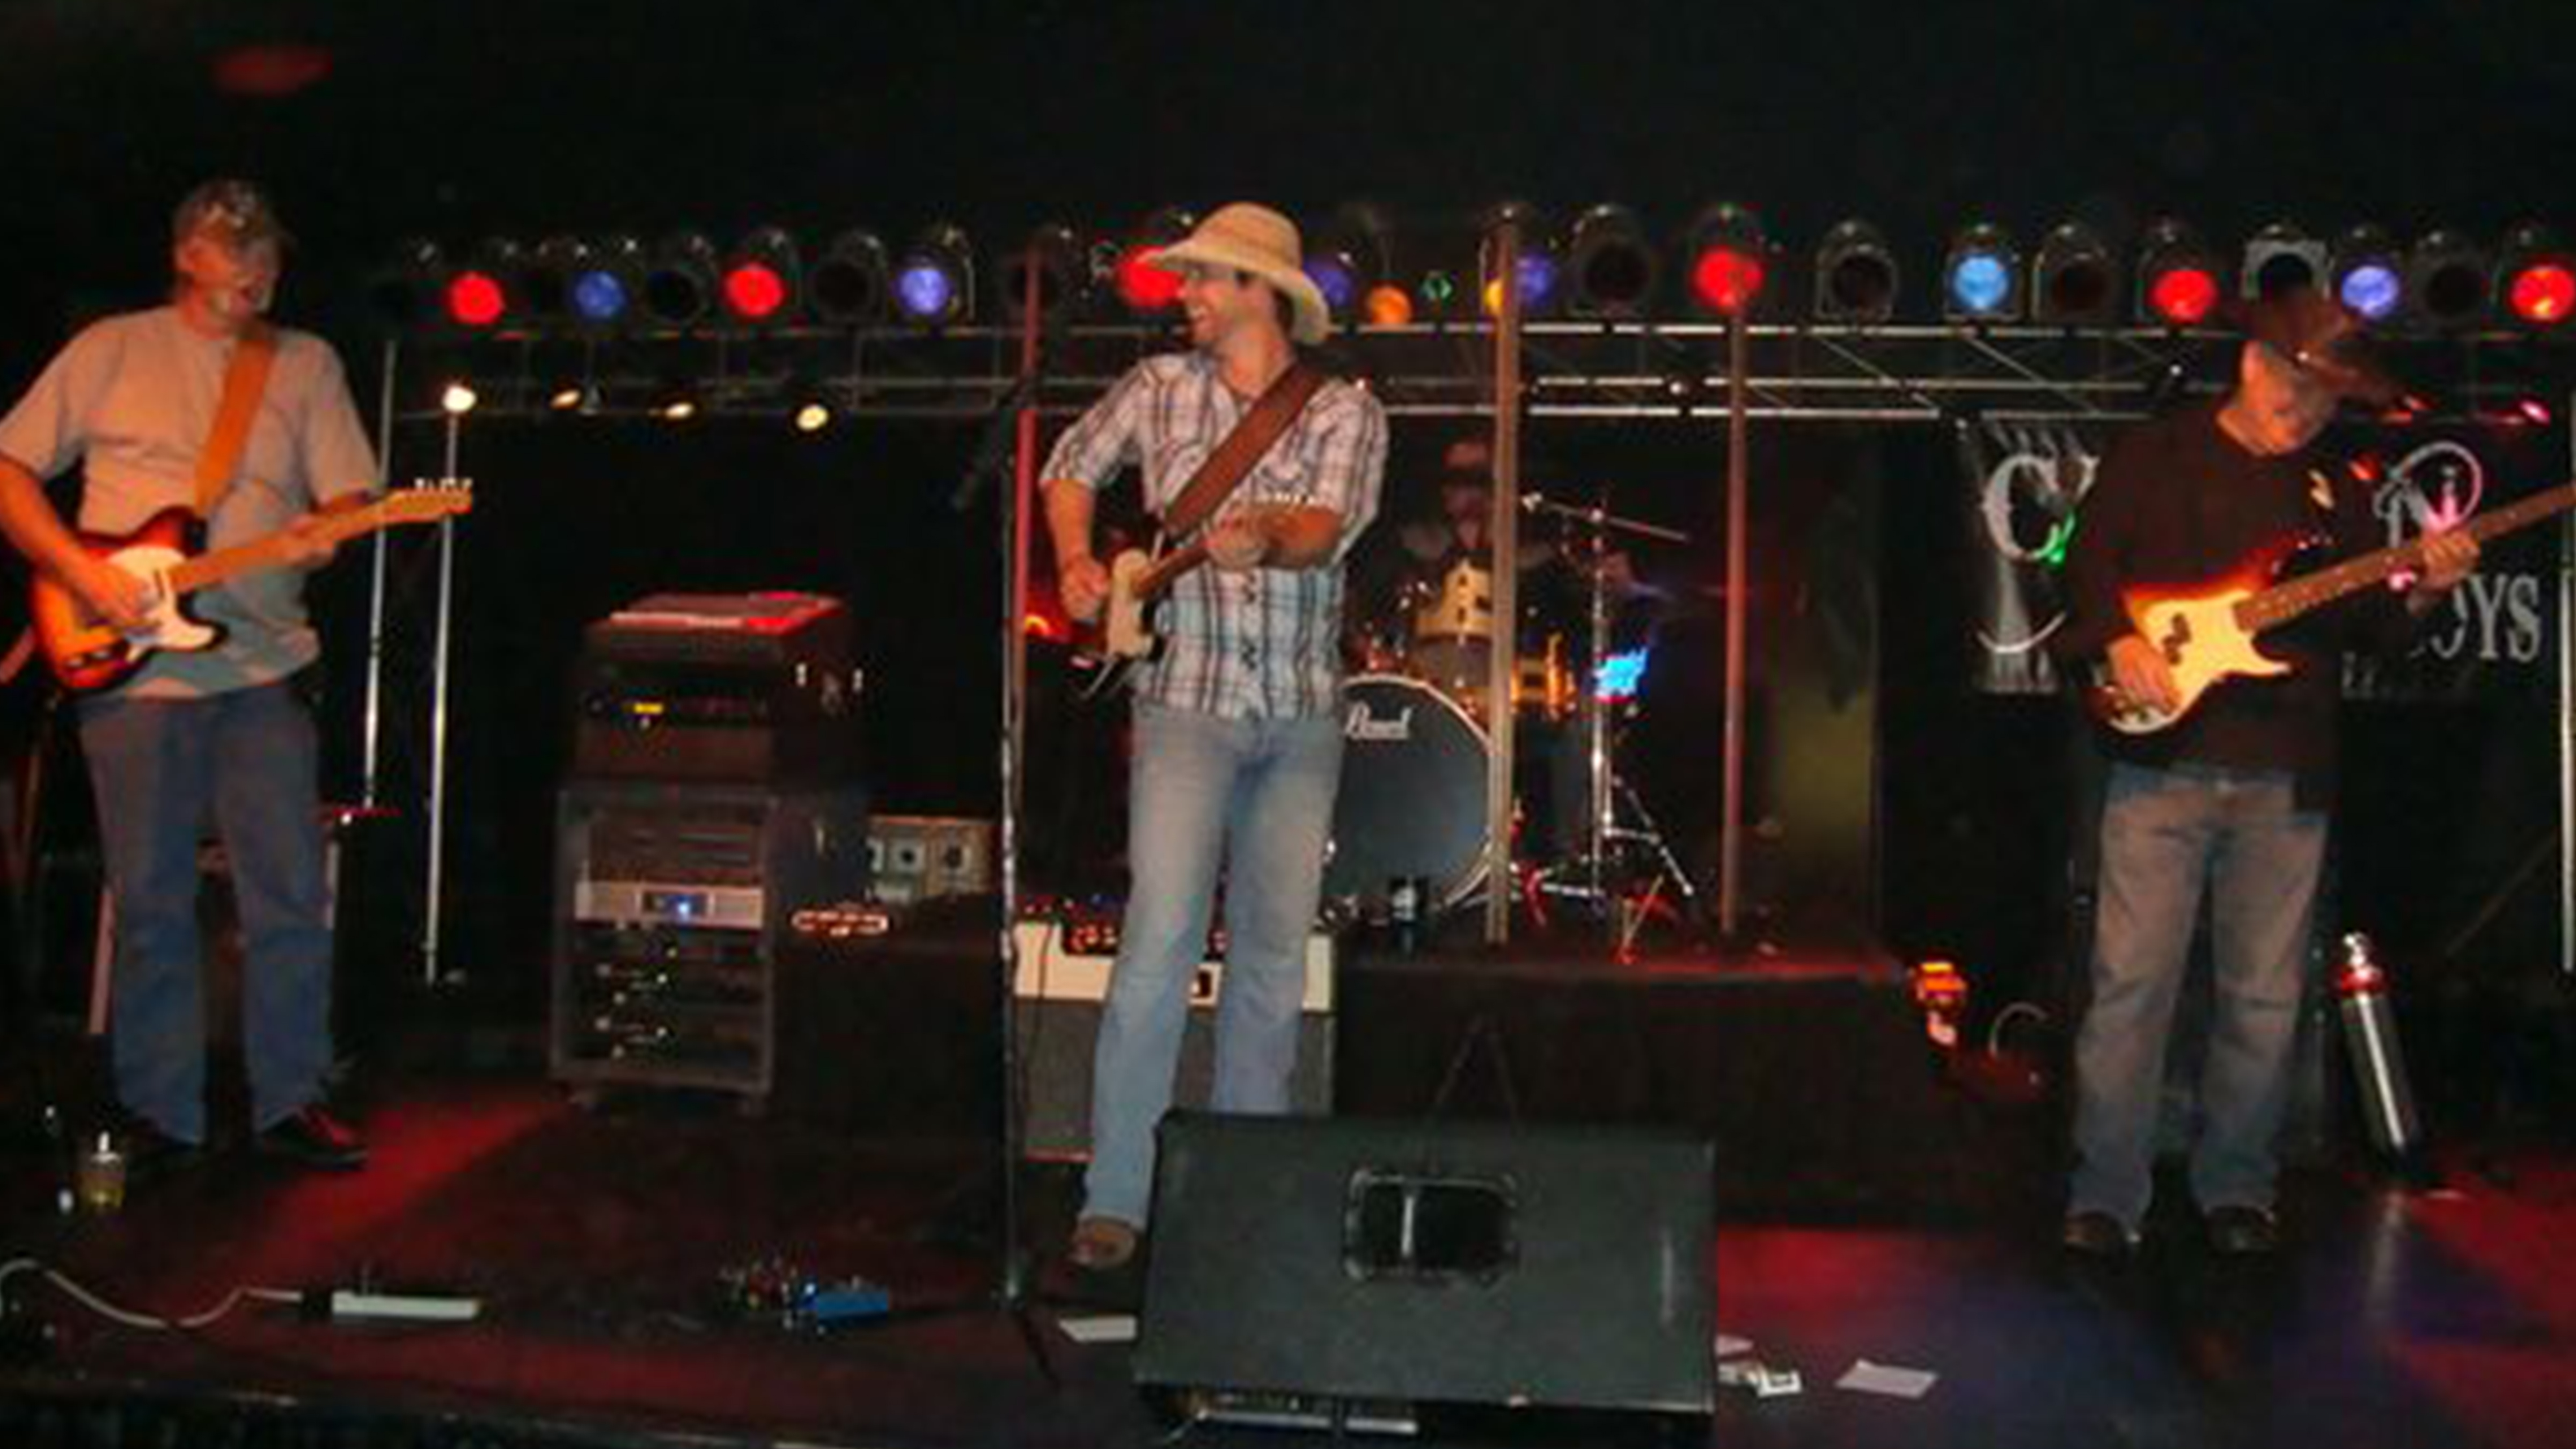 The Canyon Cowboys perfroming live!